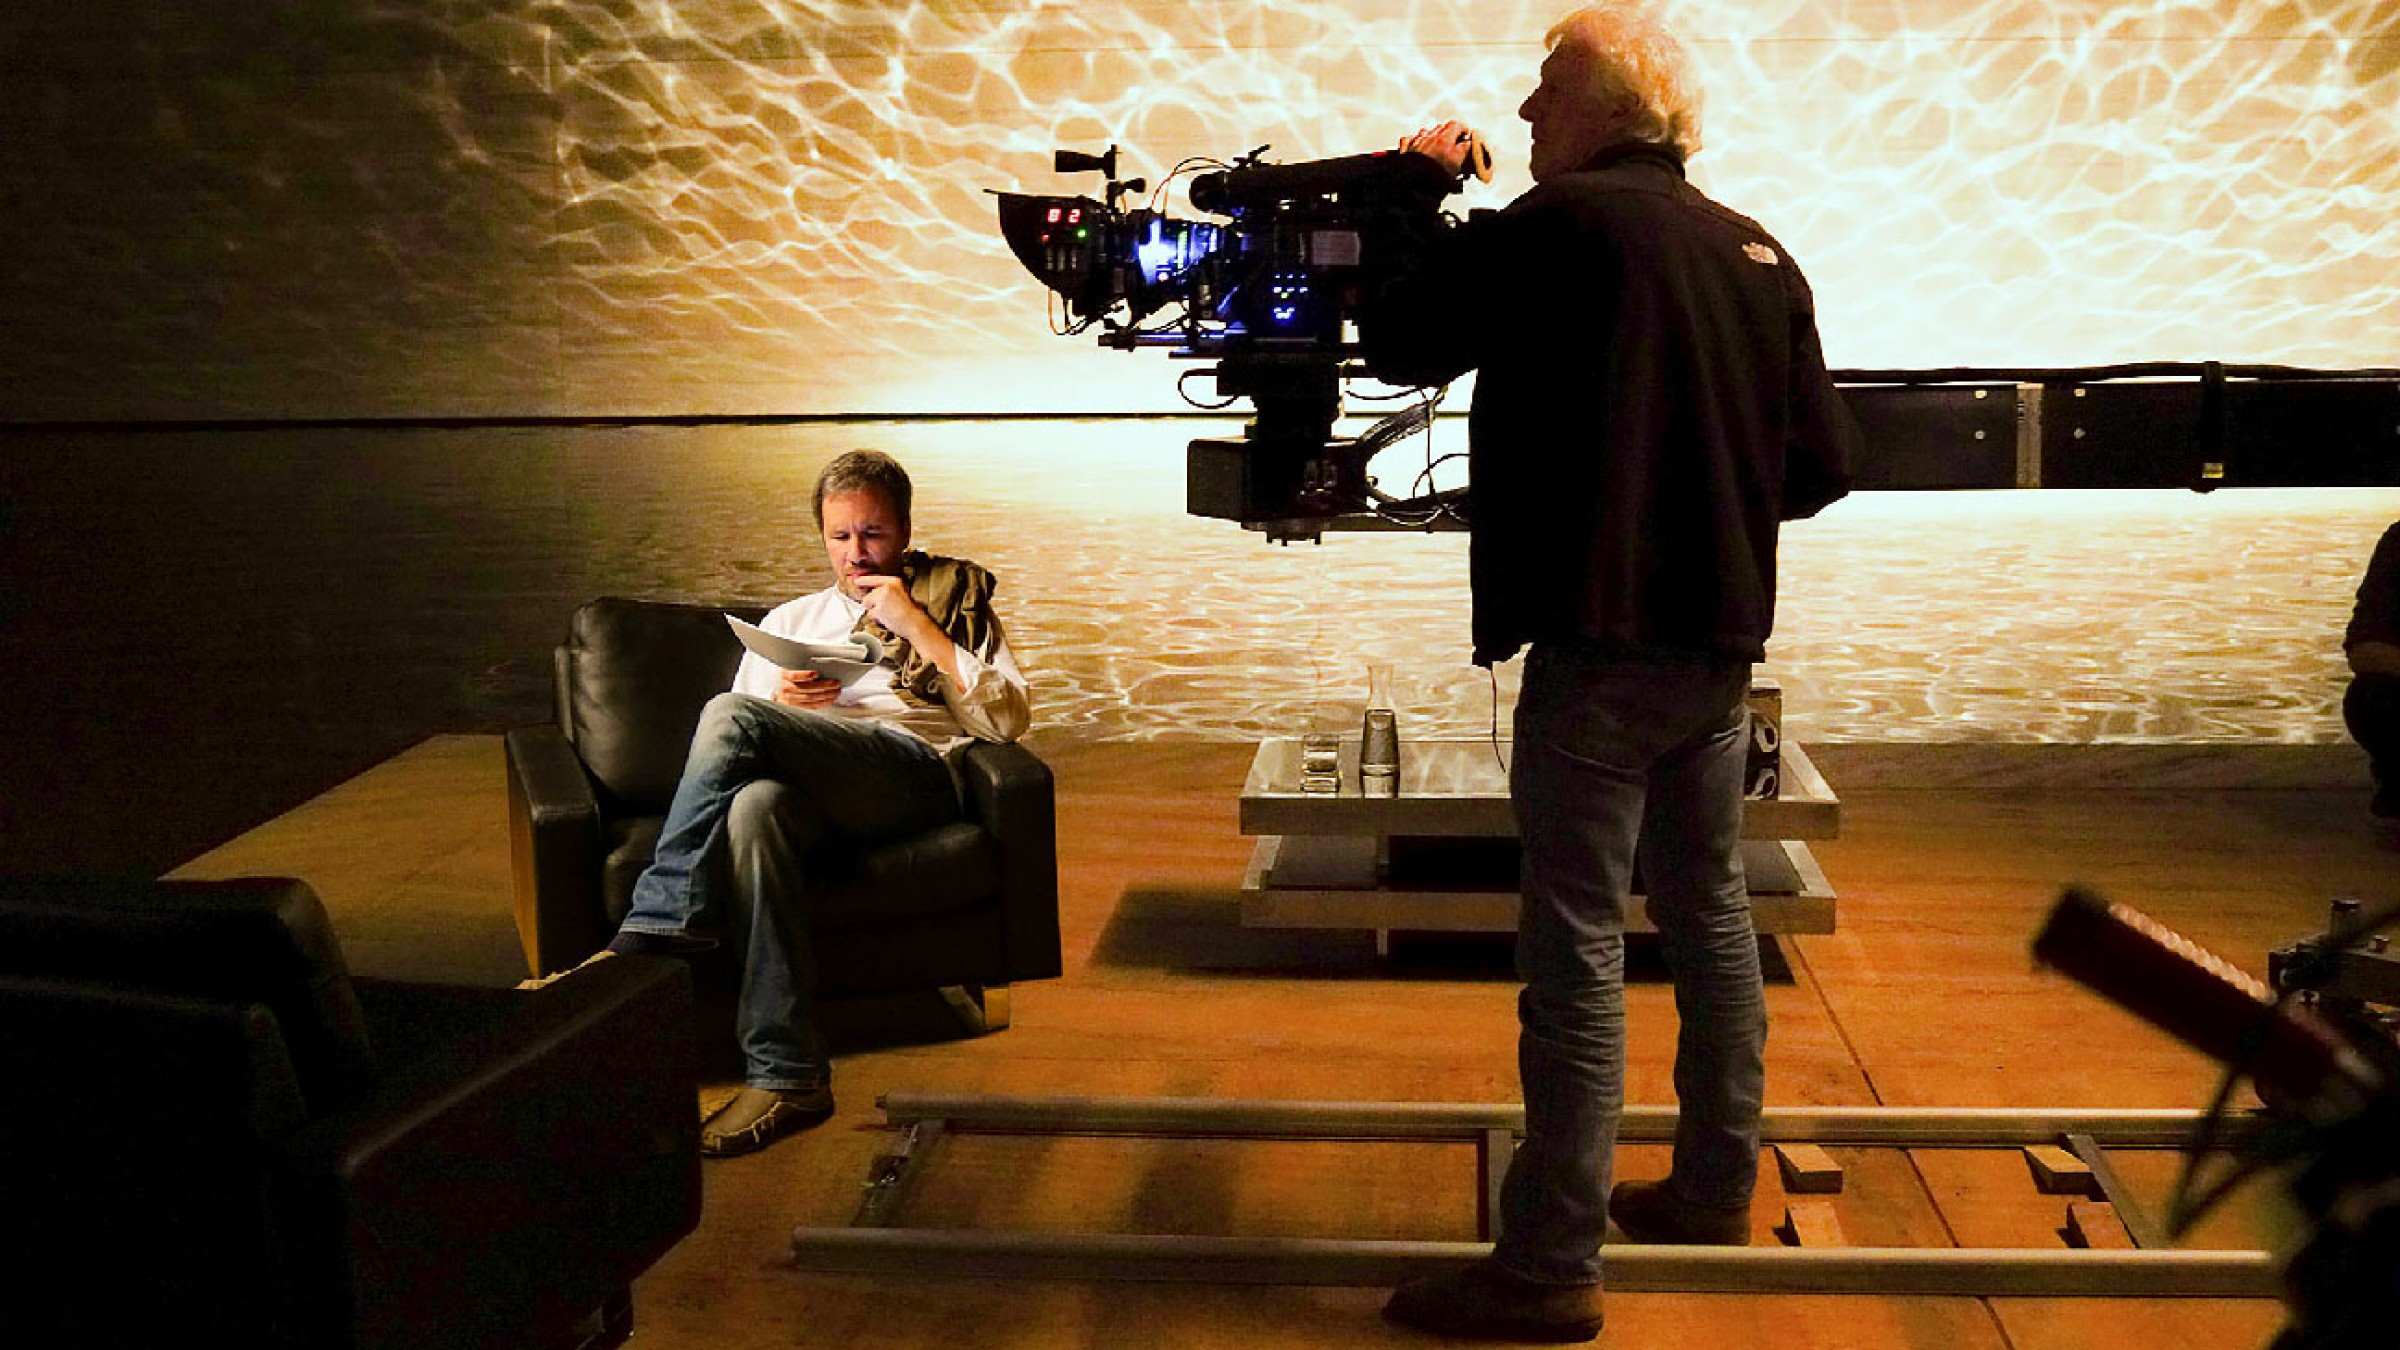 Watch Roger Deakins Dole Out Cinematography Knowledge for 2 Whole Hours